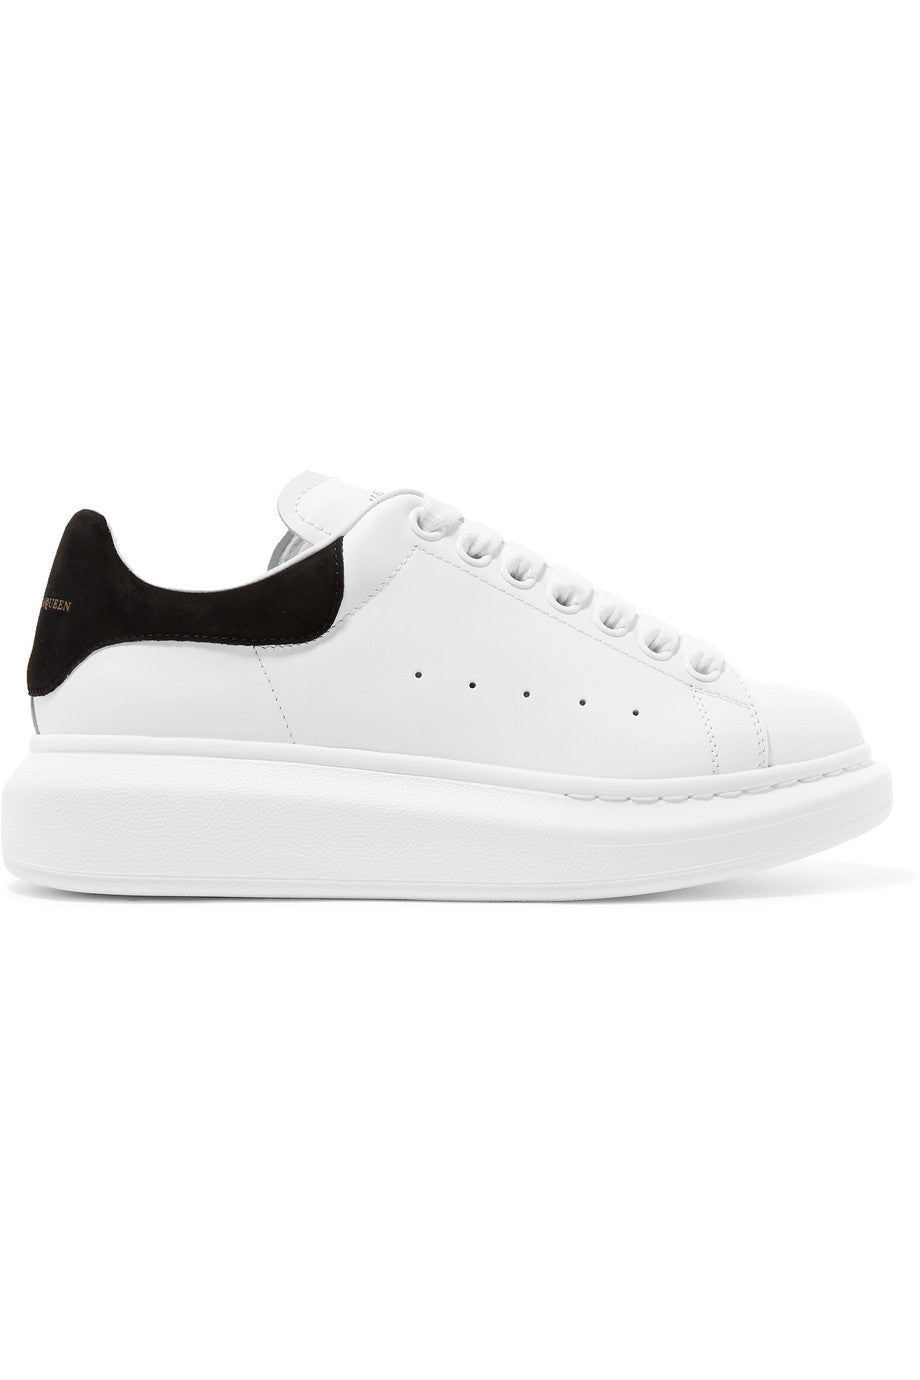 Alexander Mcqueen - White suede-trimmed leather exaggerated sole sneakers